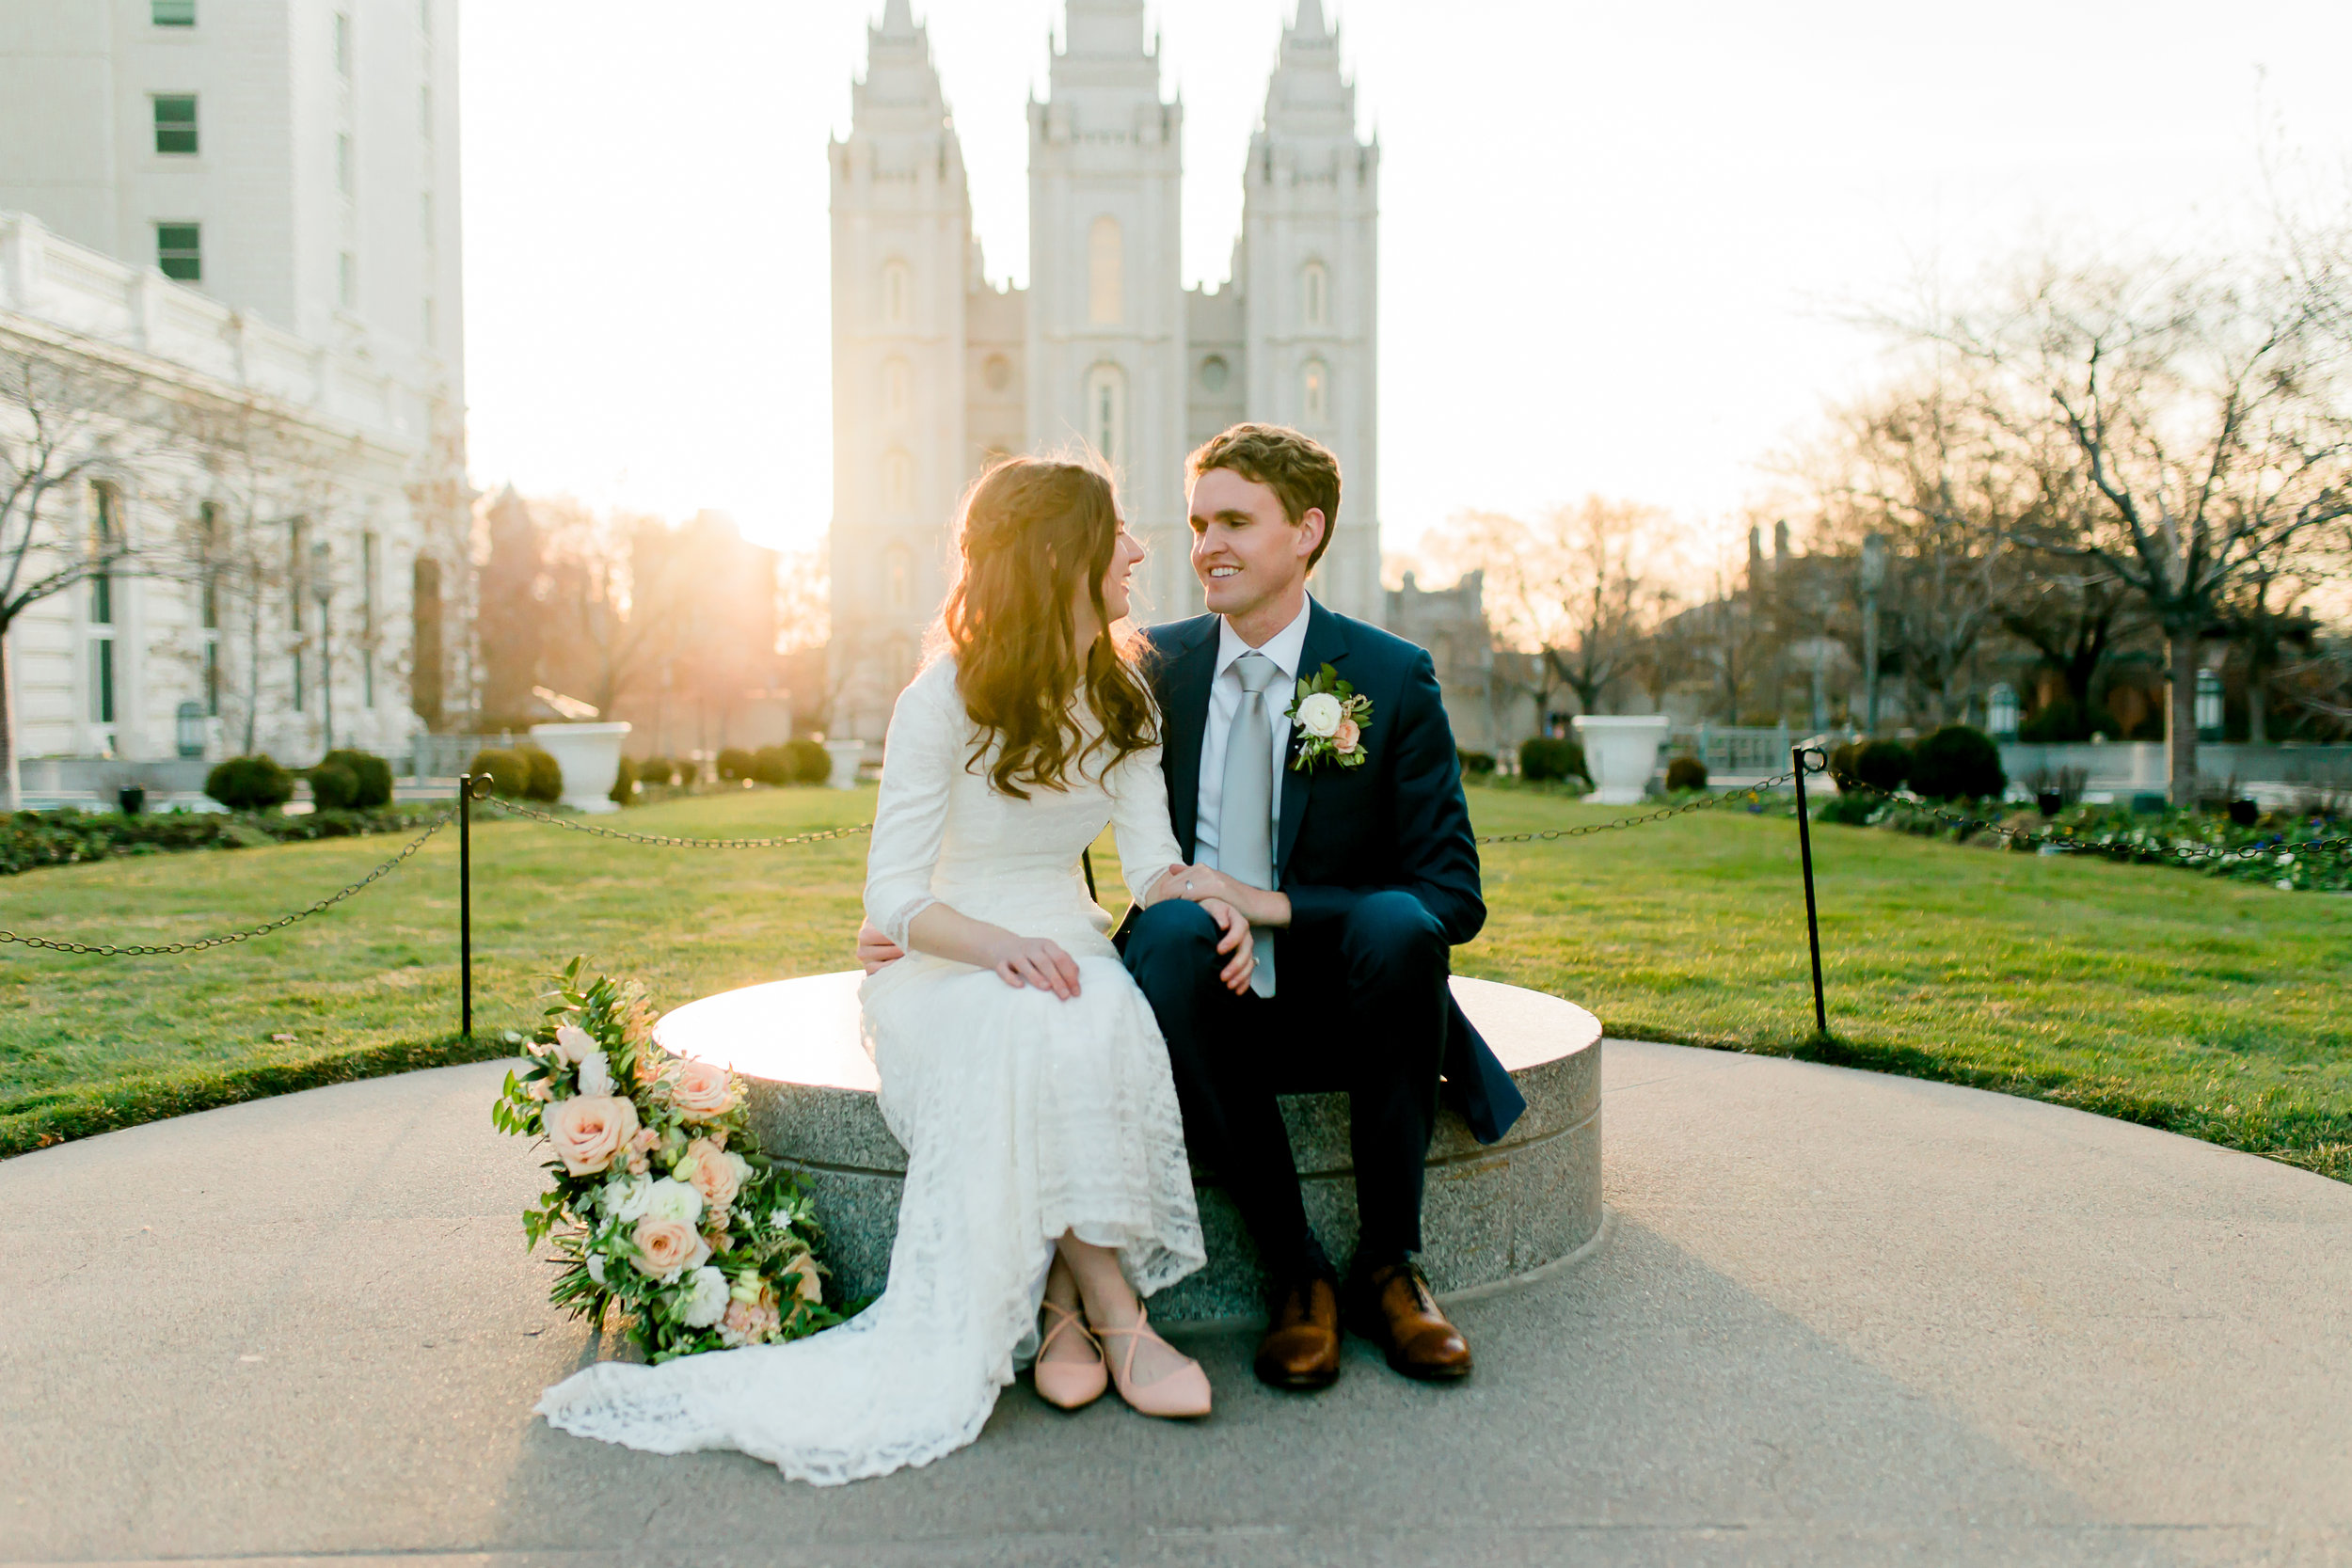 Eliza + Cody Bridals - Utah Wedding Photographer-52.jpg